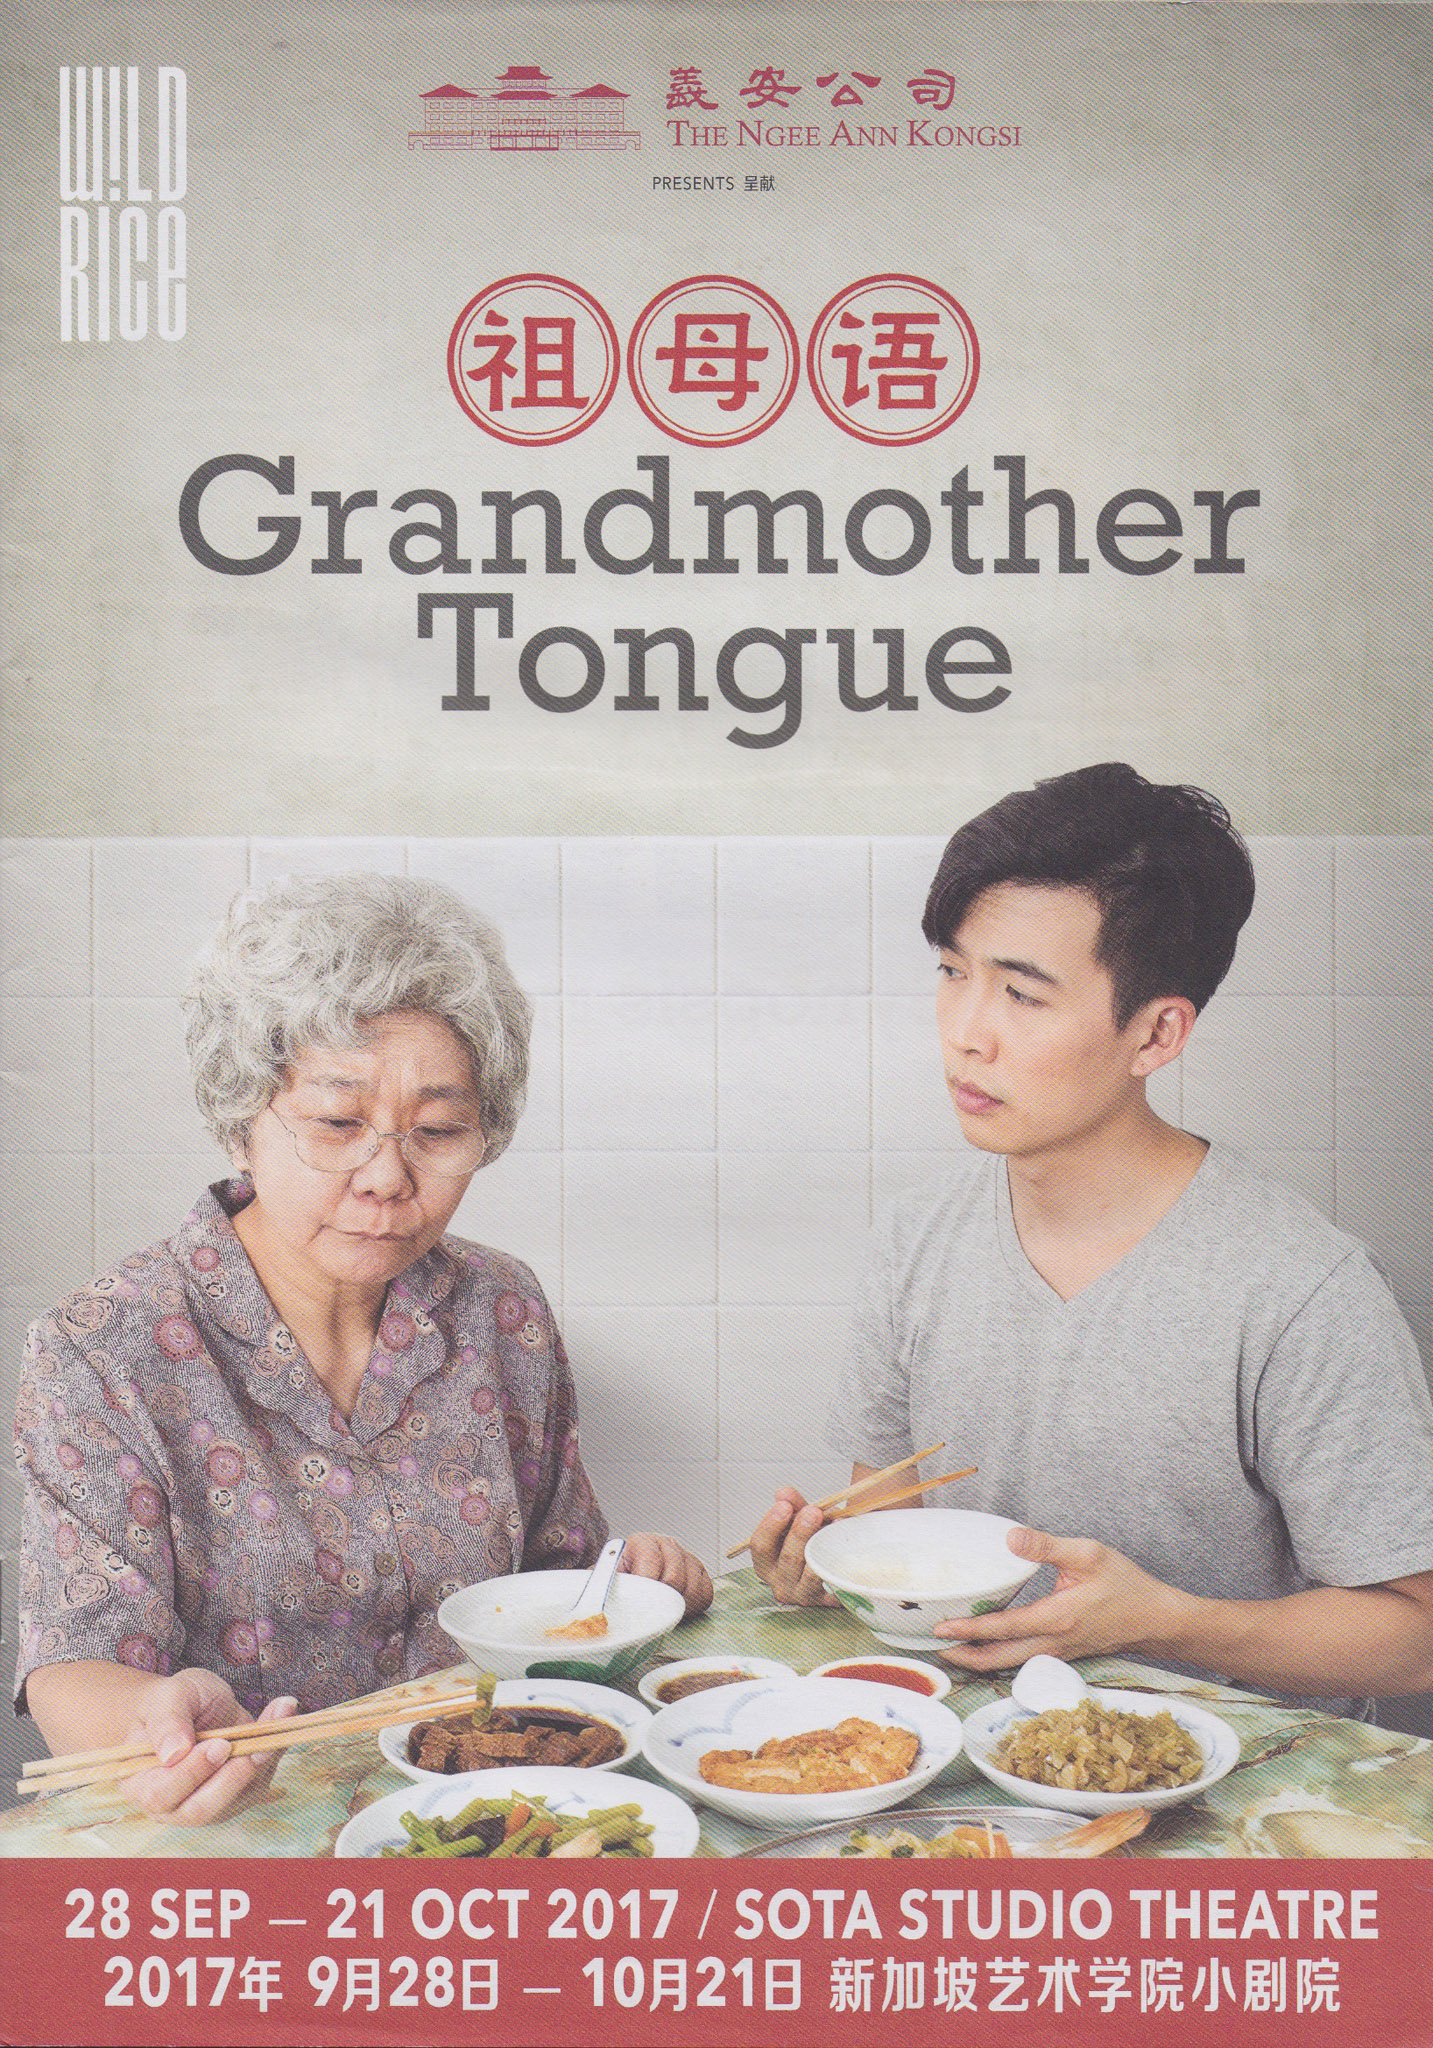 017W!ld-Rice-2016-Grandmother-Tongue-singapore-photographer-editorial-commercial-7_22.jpg